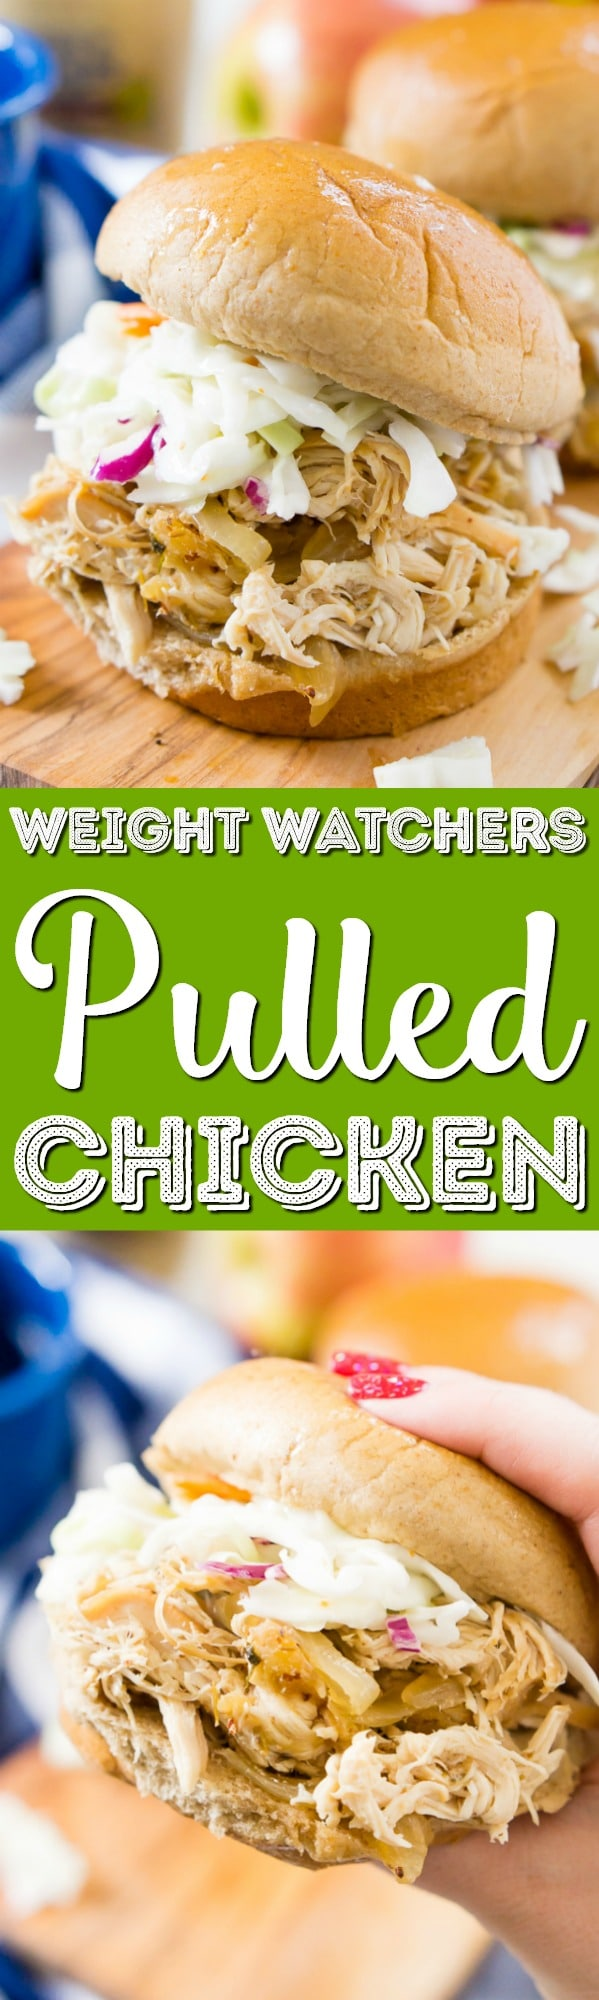 This Apple Cider Pulled Chicken is Weight Watchers approved and so easy to make! You can turn it into sandwiches, tacos, sliders, or serve it over rice! via @sugarandsoulco